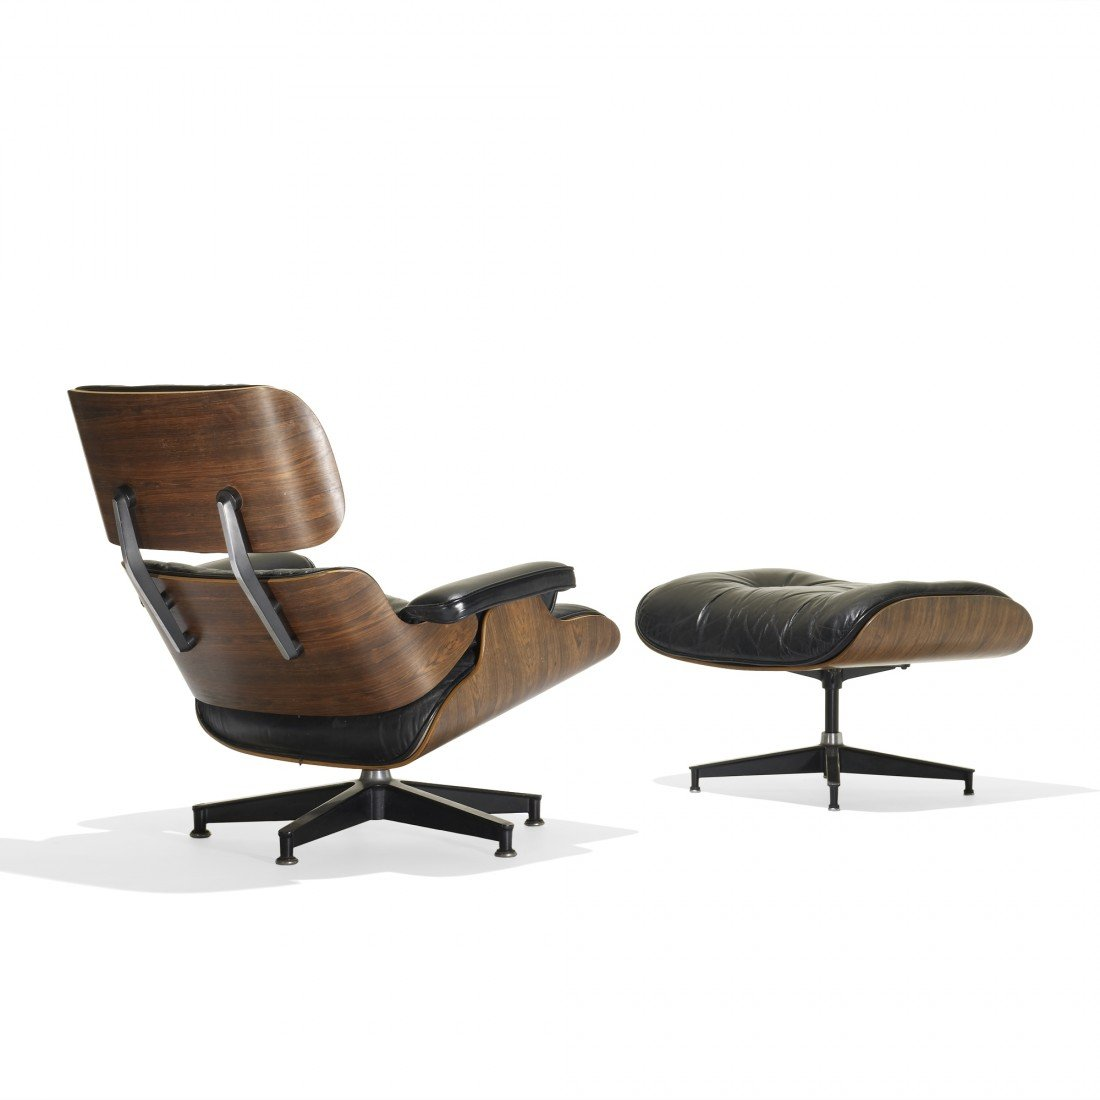 134: Eames 670 lounge chair and 671 ottoman